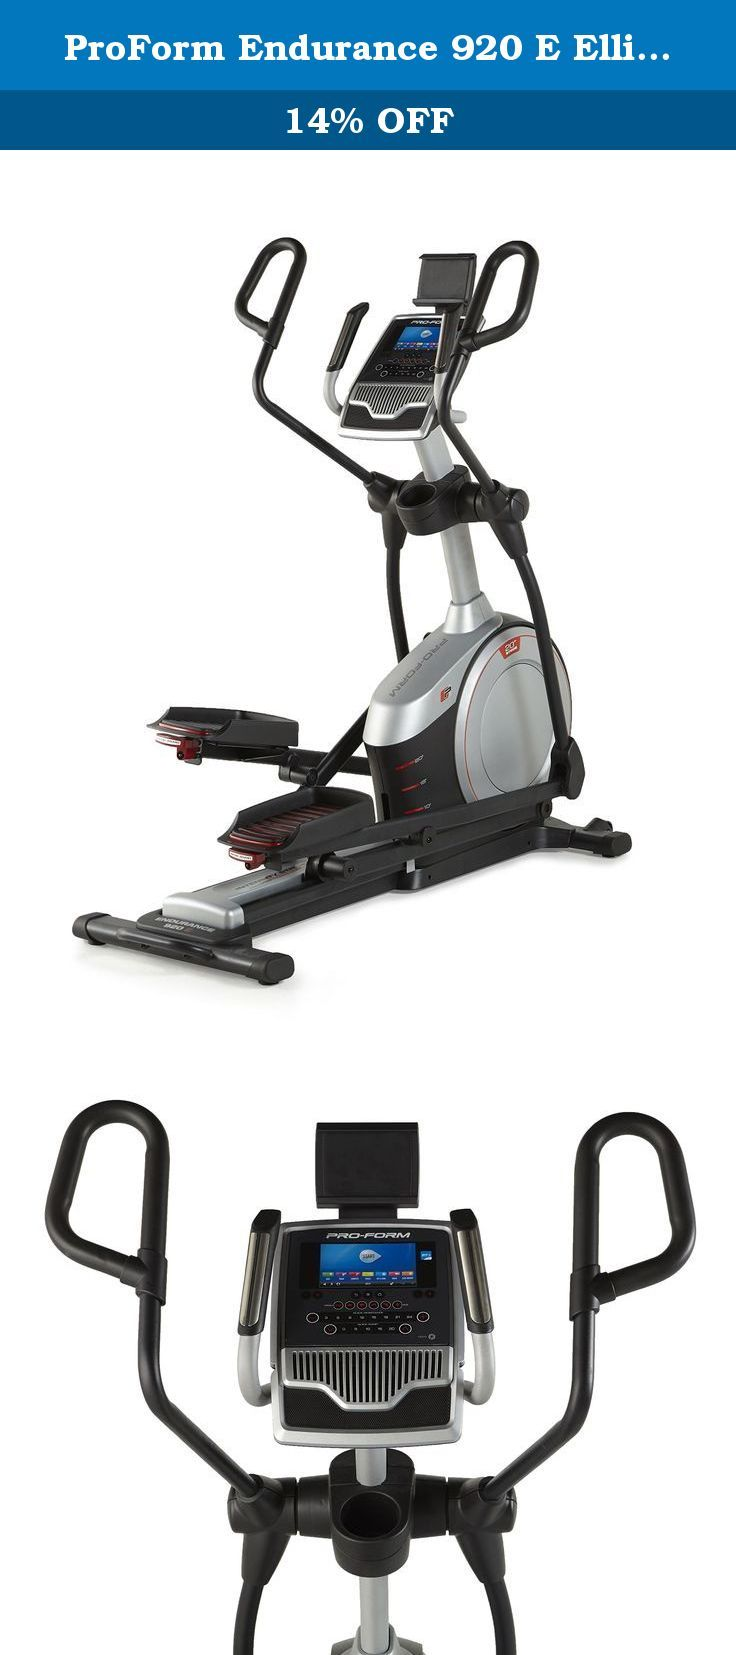 ProForm Endurance 920 E Elliptical. Mix up your workout with the ProForm endurance 930 E. This commercial-gauge constructed machine is built to take you from beginner to expert with guided workouts designed by professionally certified trainers. Be entertained with a powerful onboard sound system and 7 inch full-color touchscreen display.